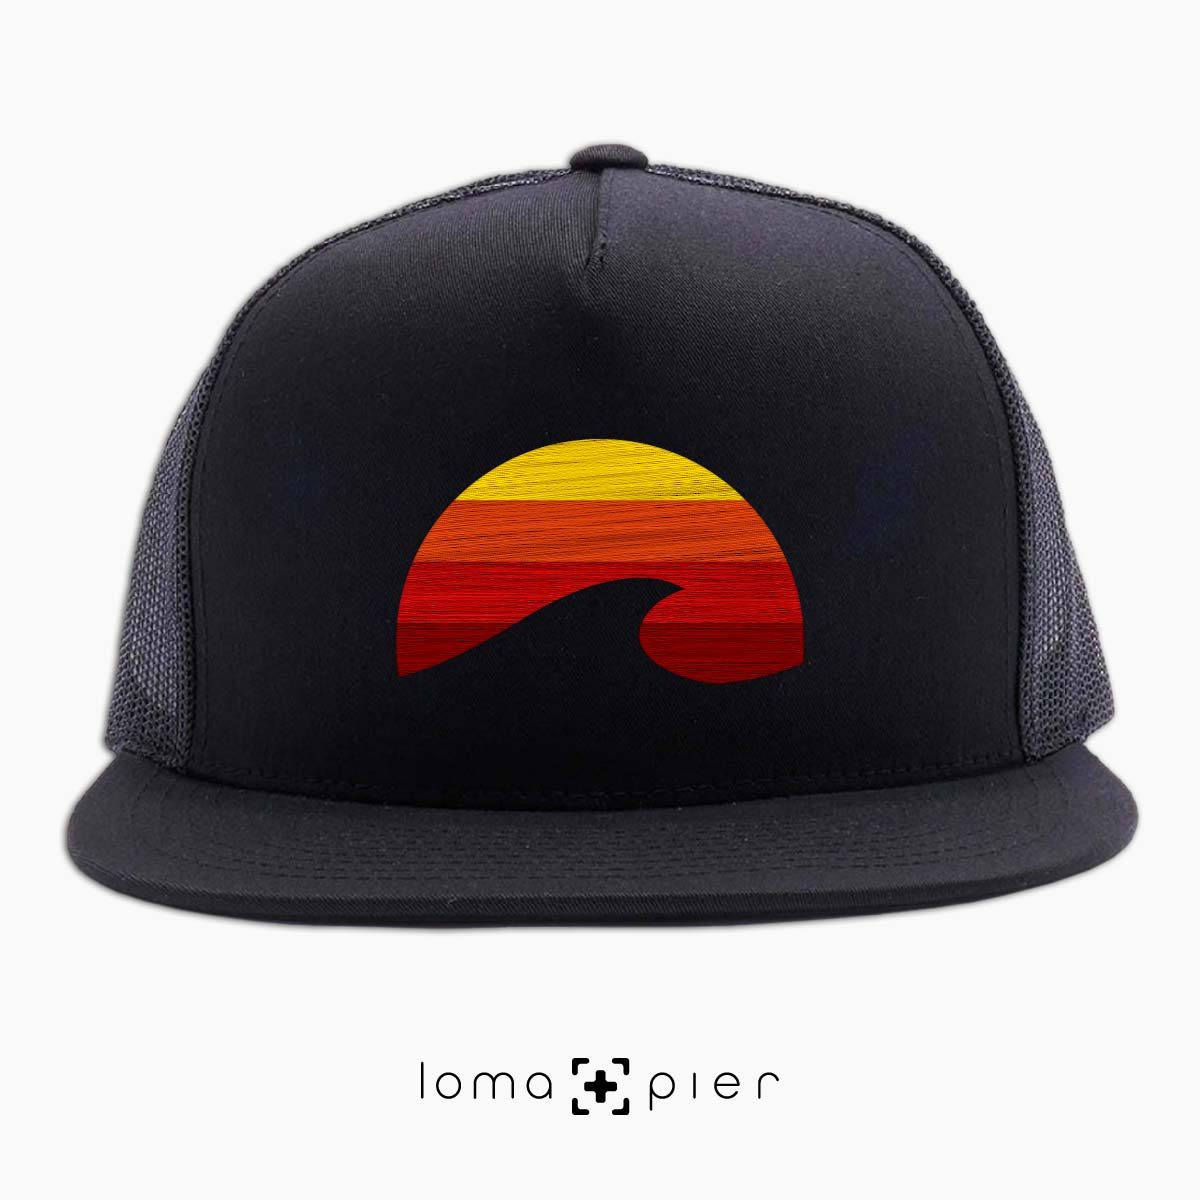 PACIFIC SUN manhattan beach netback hat in black by loma+pier hat store